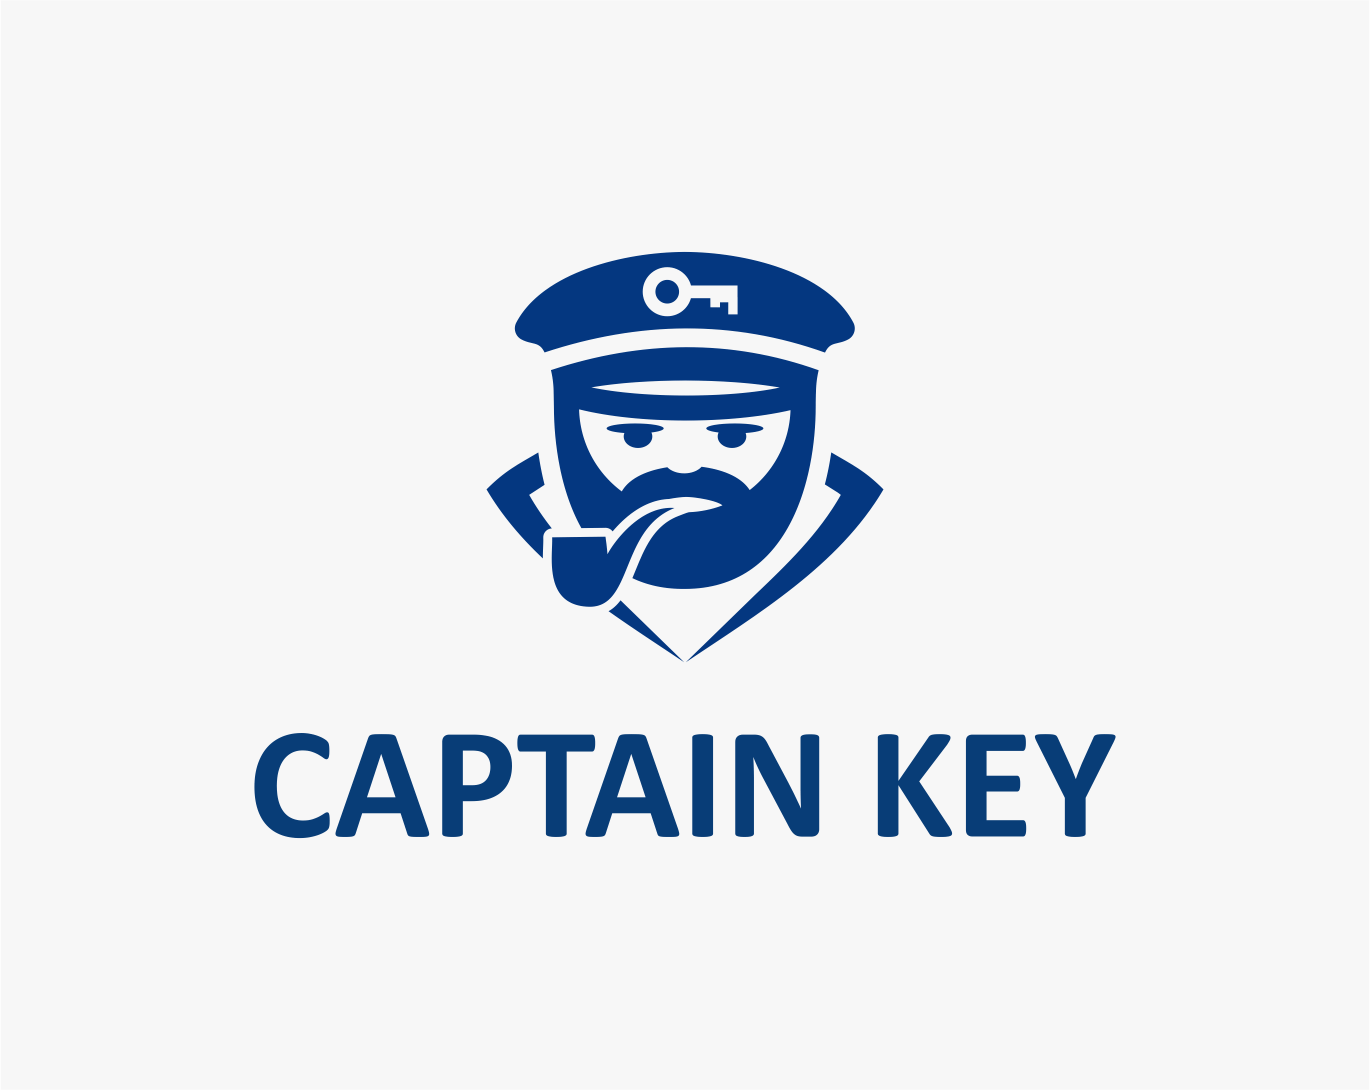 captain-key-logo-design-minimalistisch-illustrativ